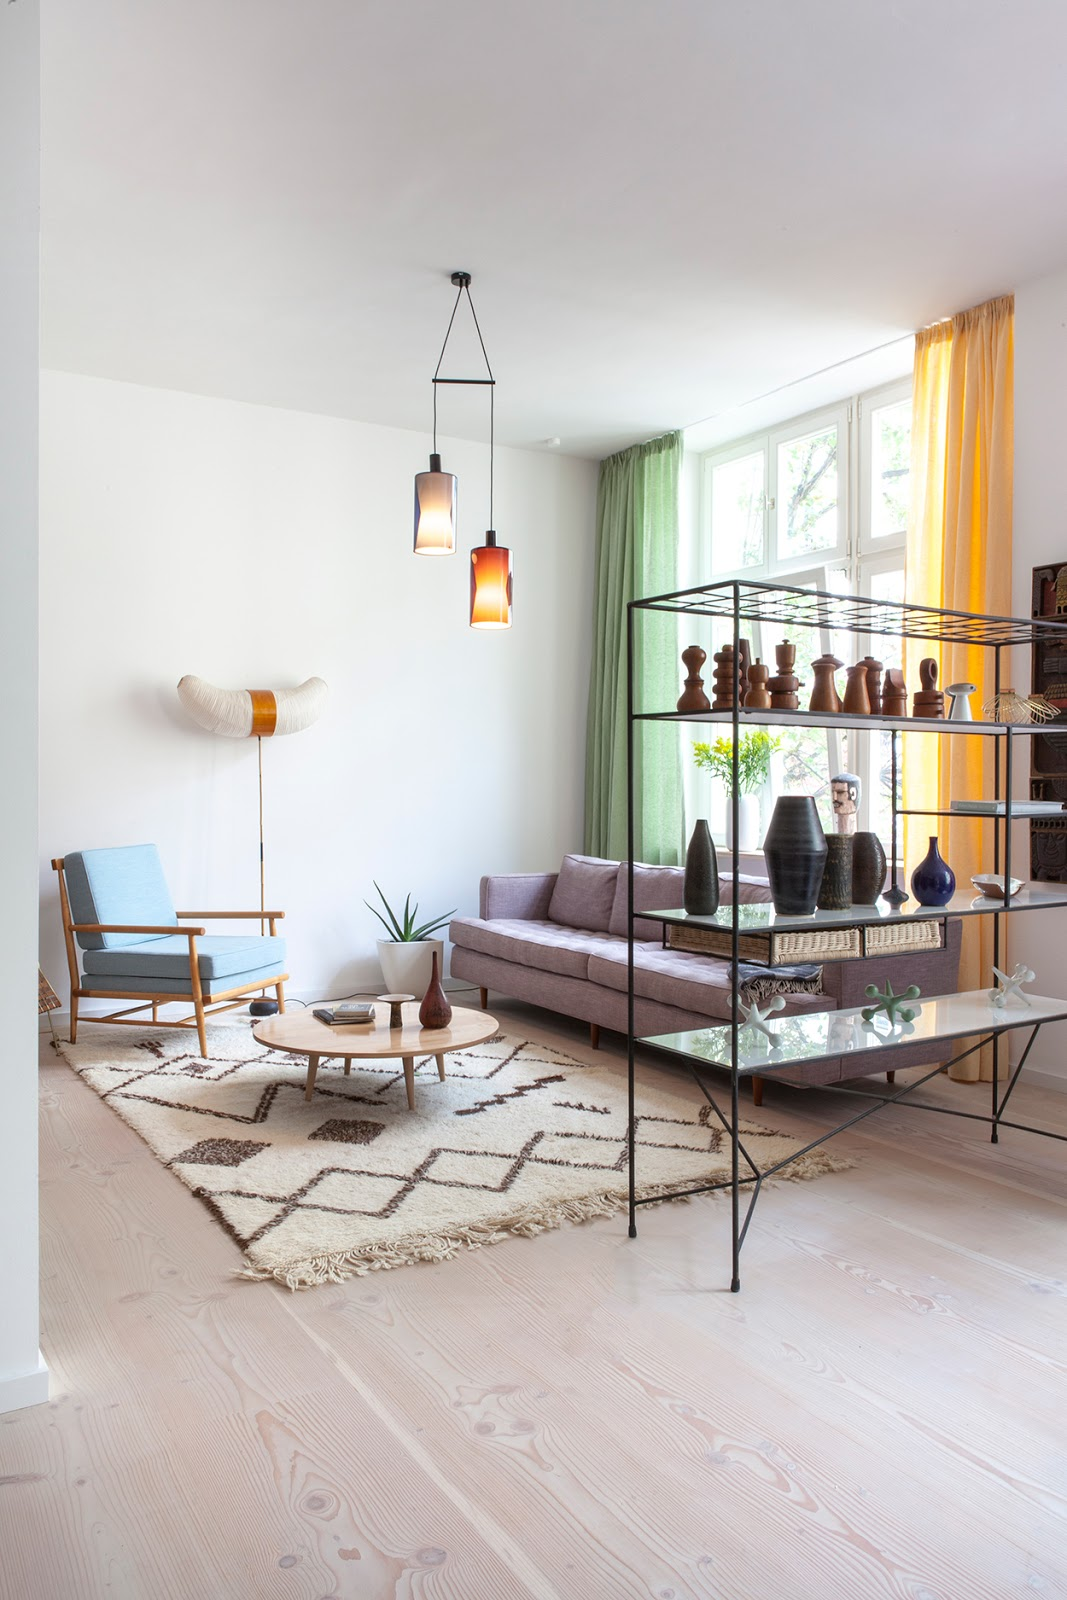 amazing designer loft in berlin with mdi century modern design, noguchi lamp, pattern carpet, pottery collection, light blue armchair